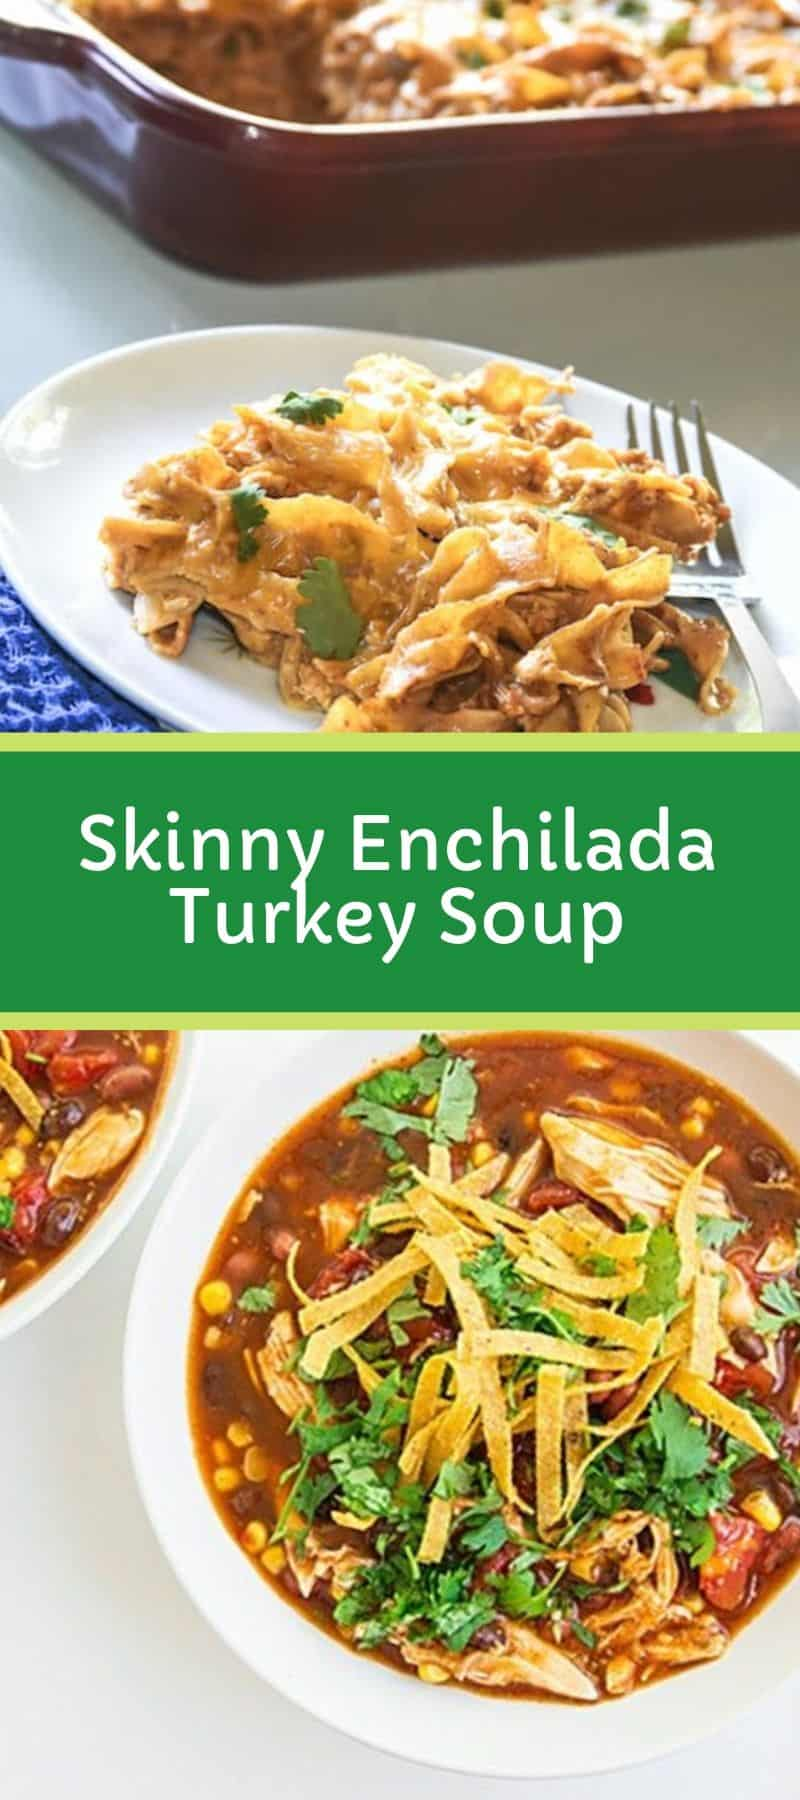 Skinny Enchilada Turkey Soup 3